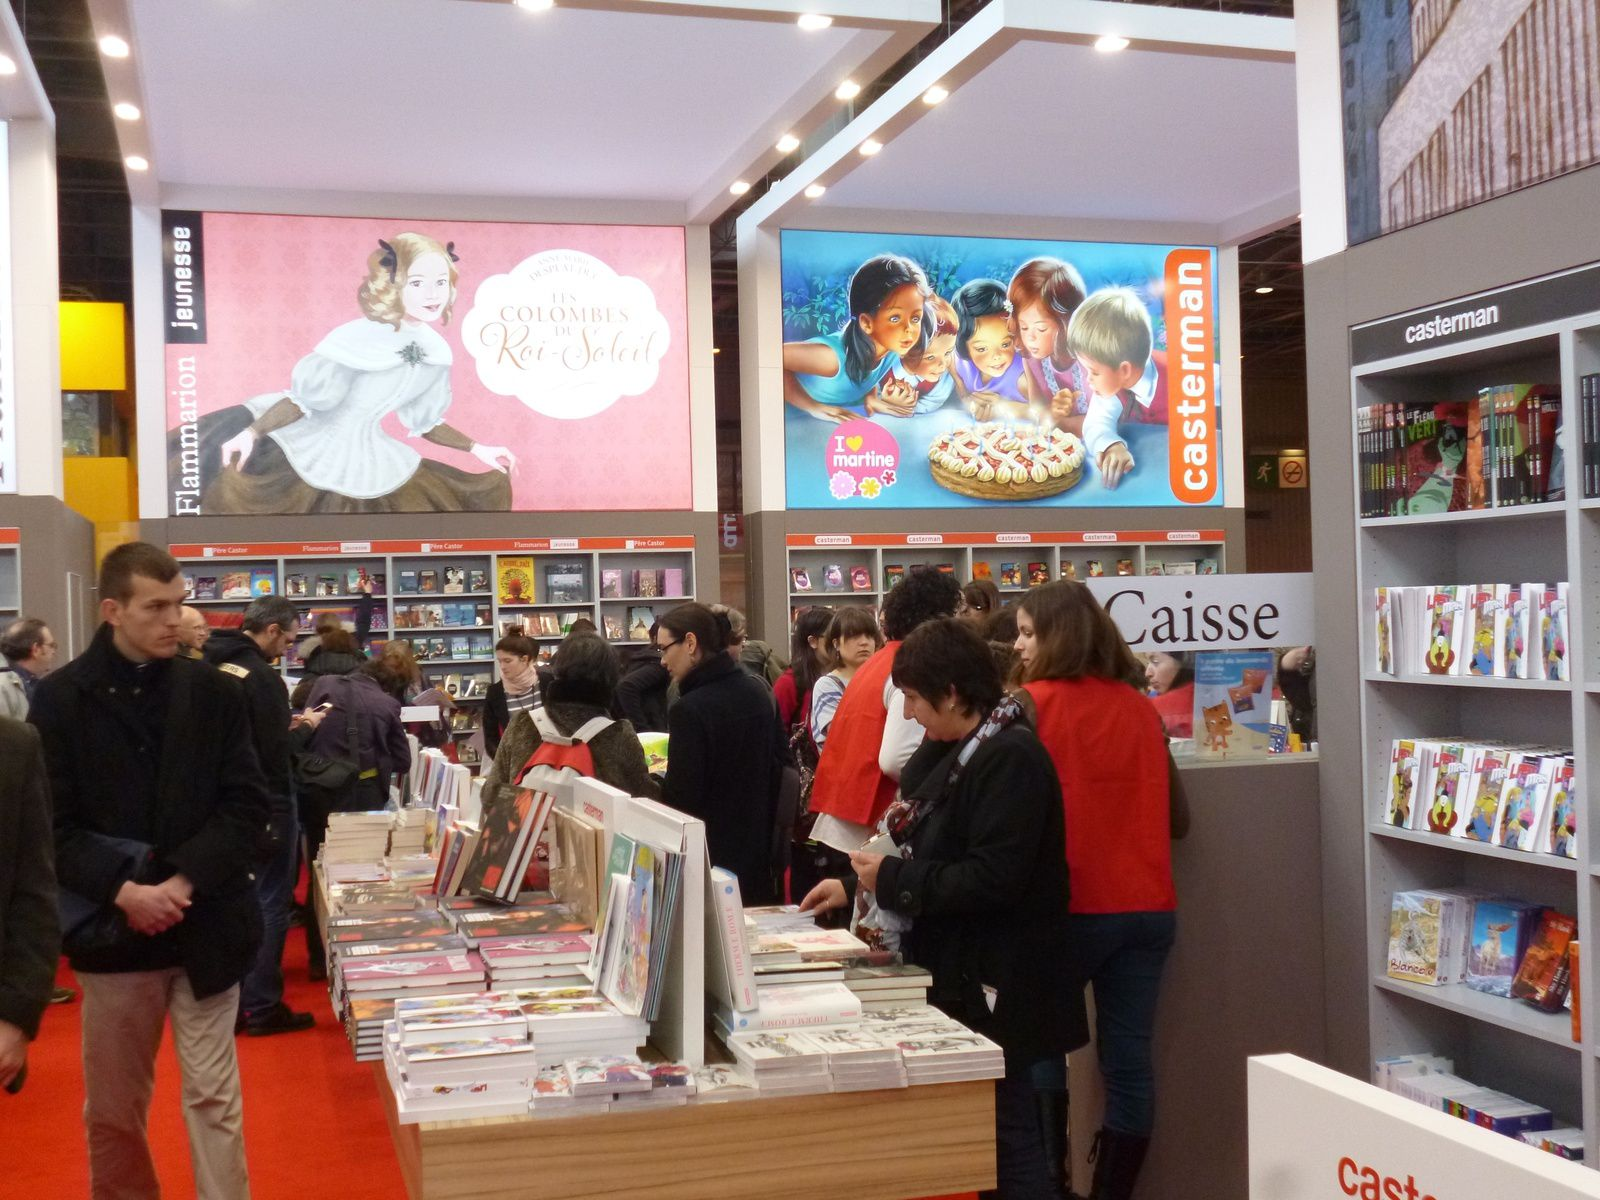 Salon du livre de Paris